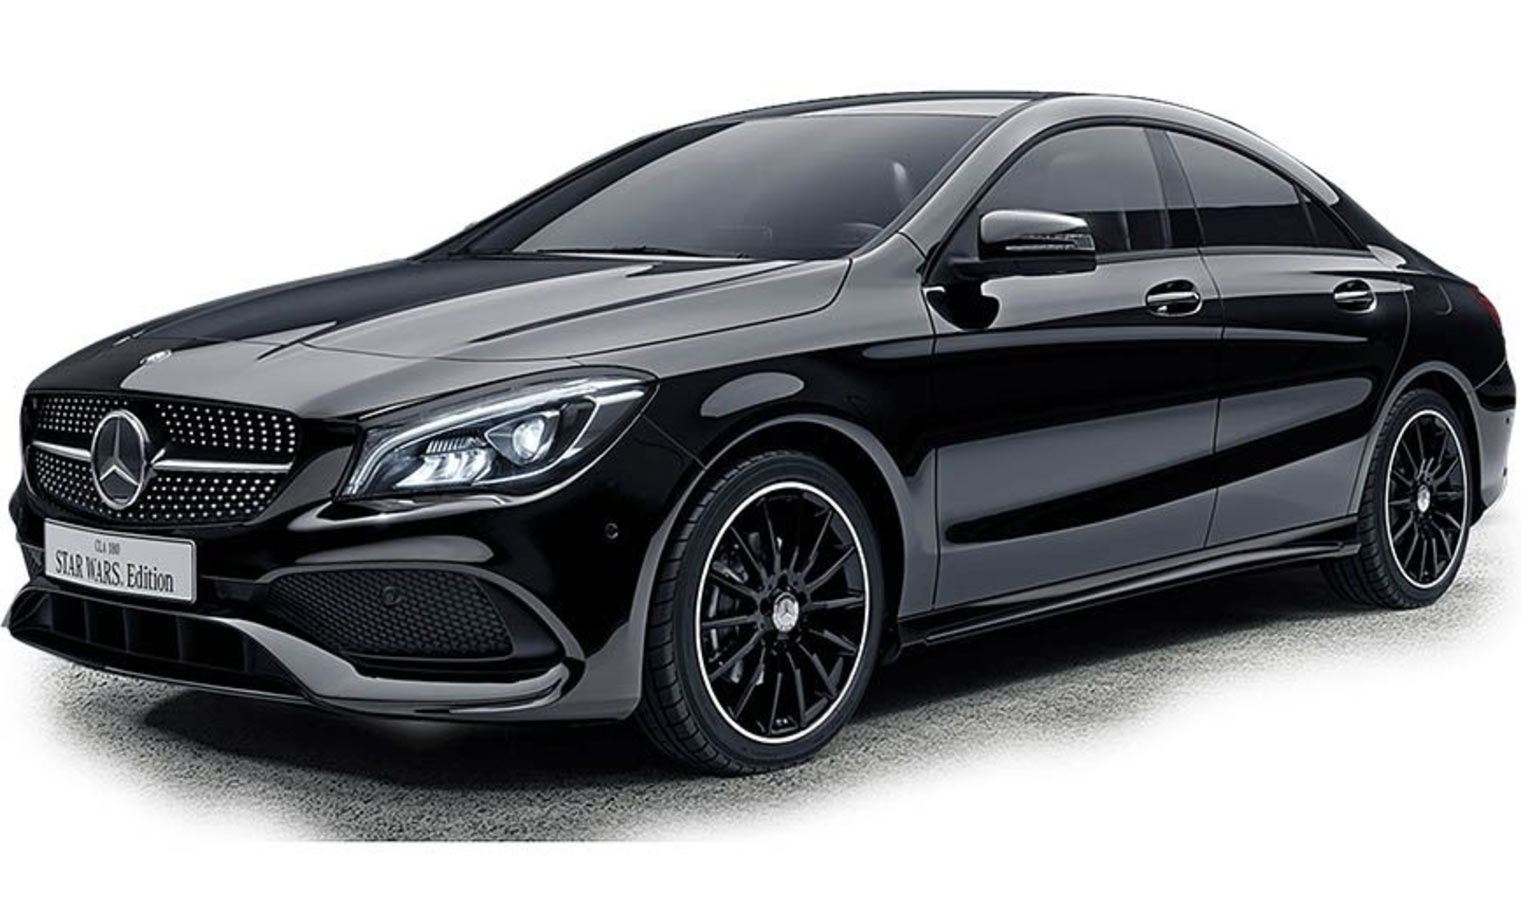 japan welcomes mercedes benz cla 180 star wars edition carscoops. Black Bedroom Furniture Sets. Home Design Ideas